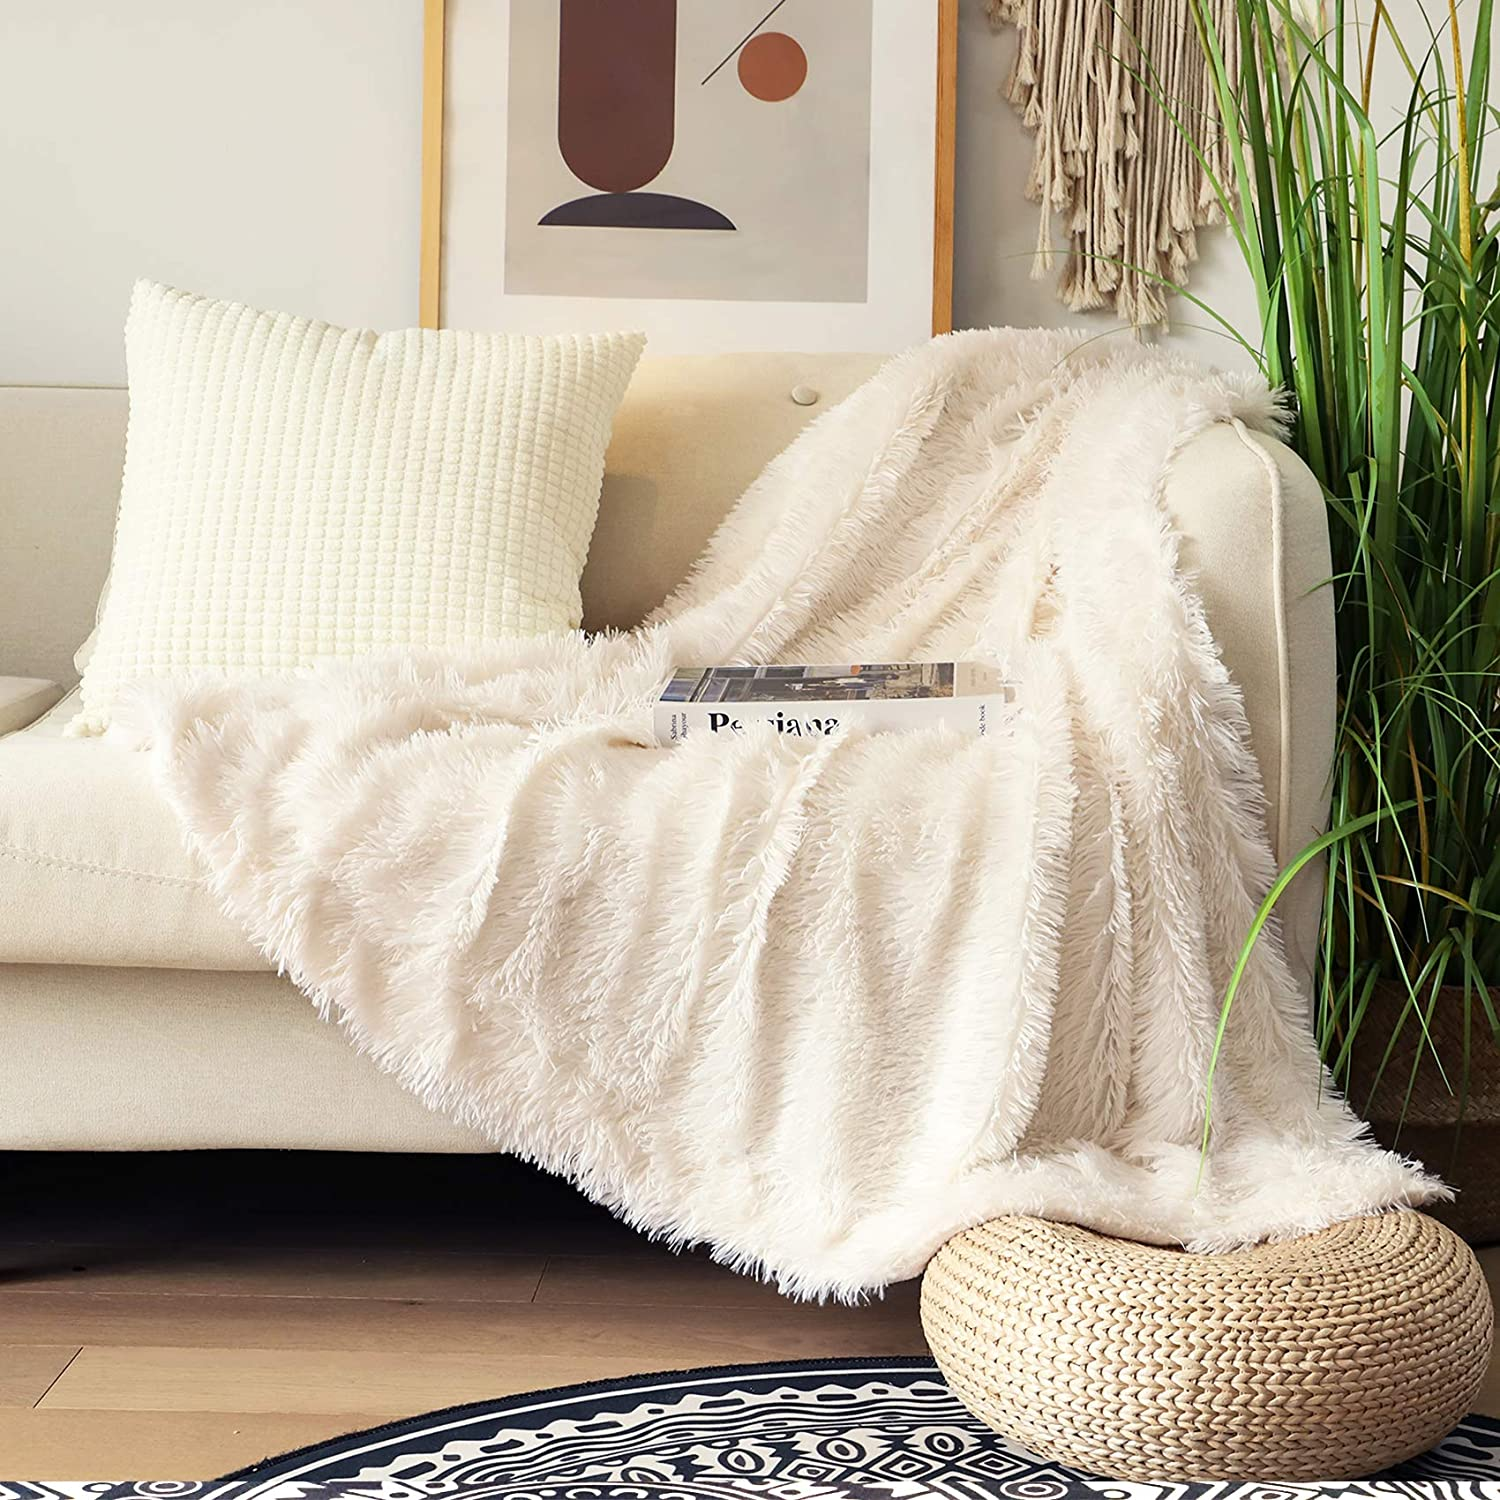 "Decorative Extra Soft Fuzzy Faux Fur Throw Blanket 50"" x 60"",Solid Reversible Lightweight Long Hair Shaggy Blanket,Fluffy Cozy Plush Comfy Microfiber Fleece Blankets for Couch Sofa Bedroom,Cream White"